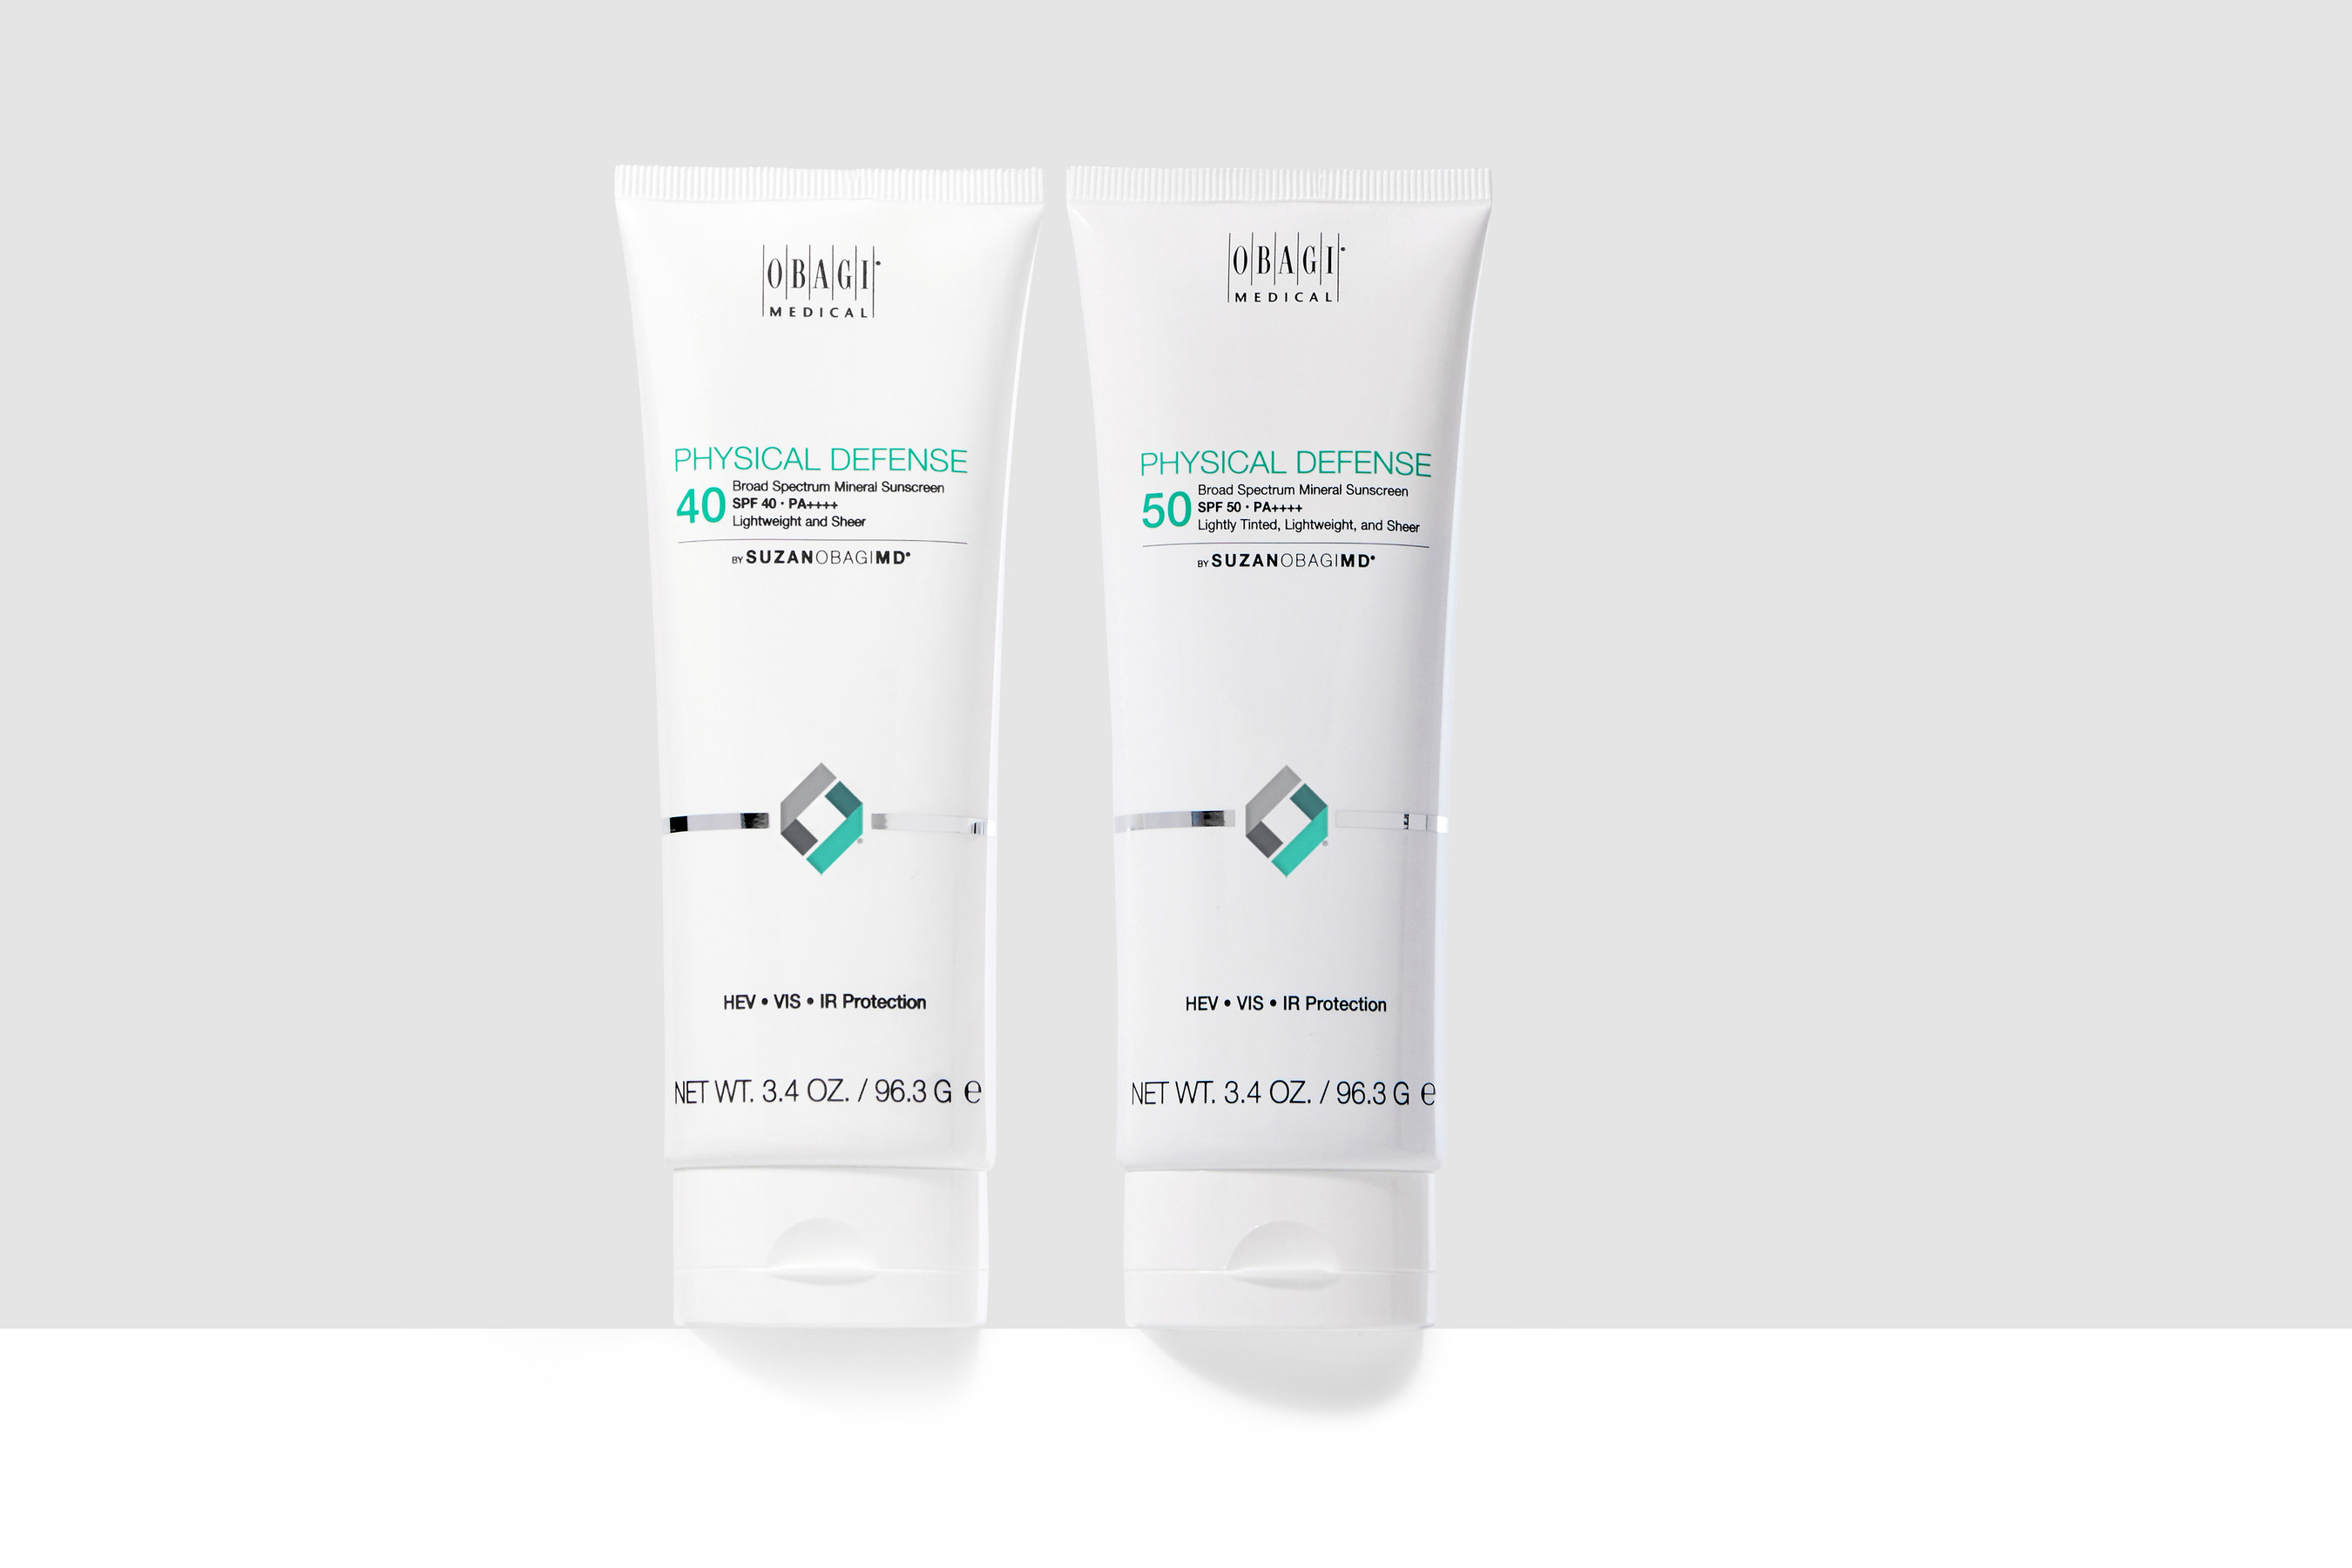 Obagi Drops Two New Sunscreens and a Serum image